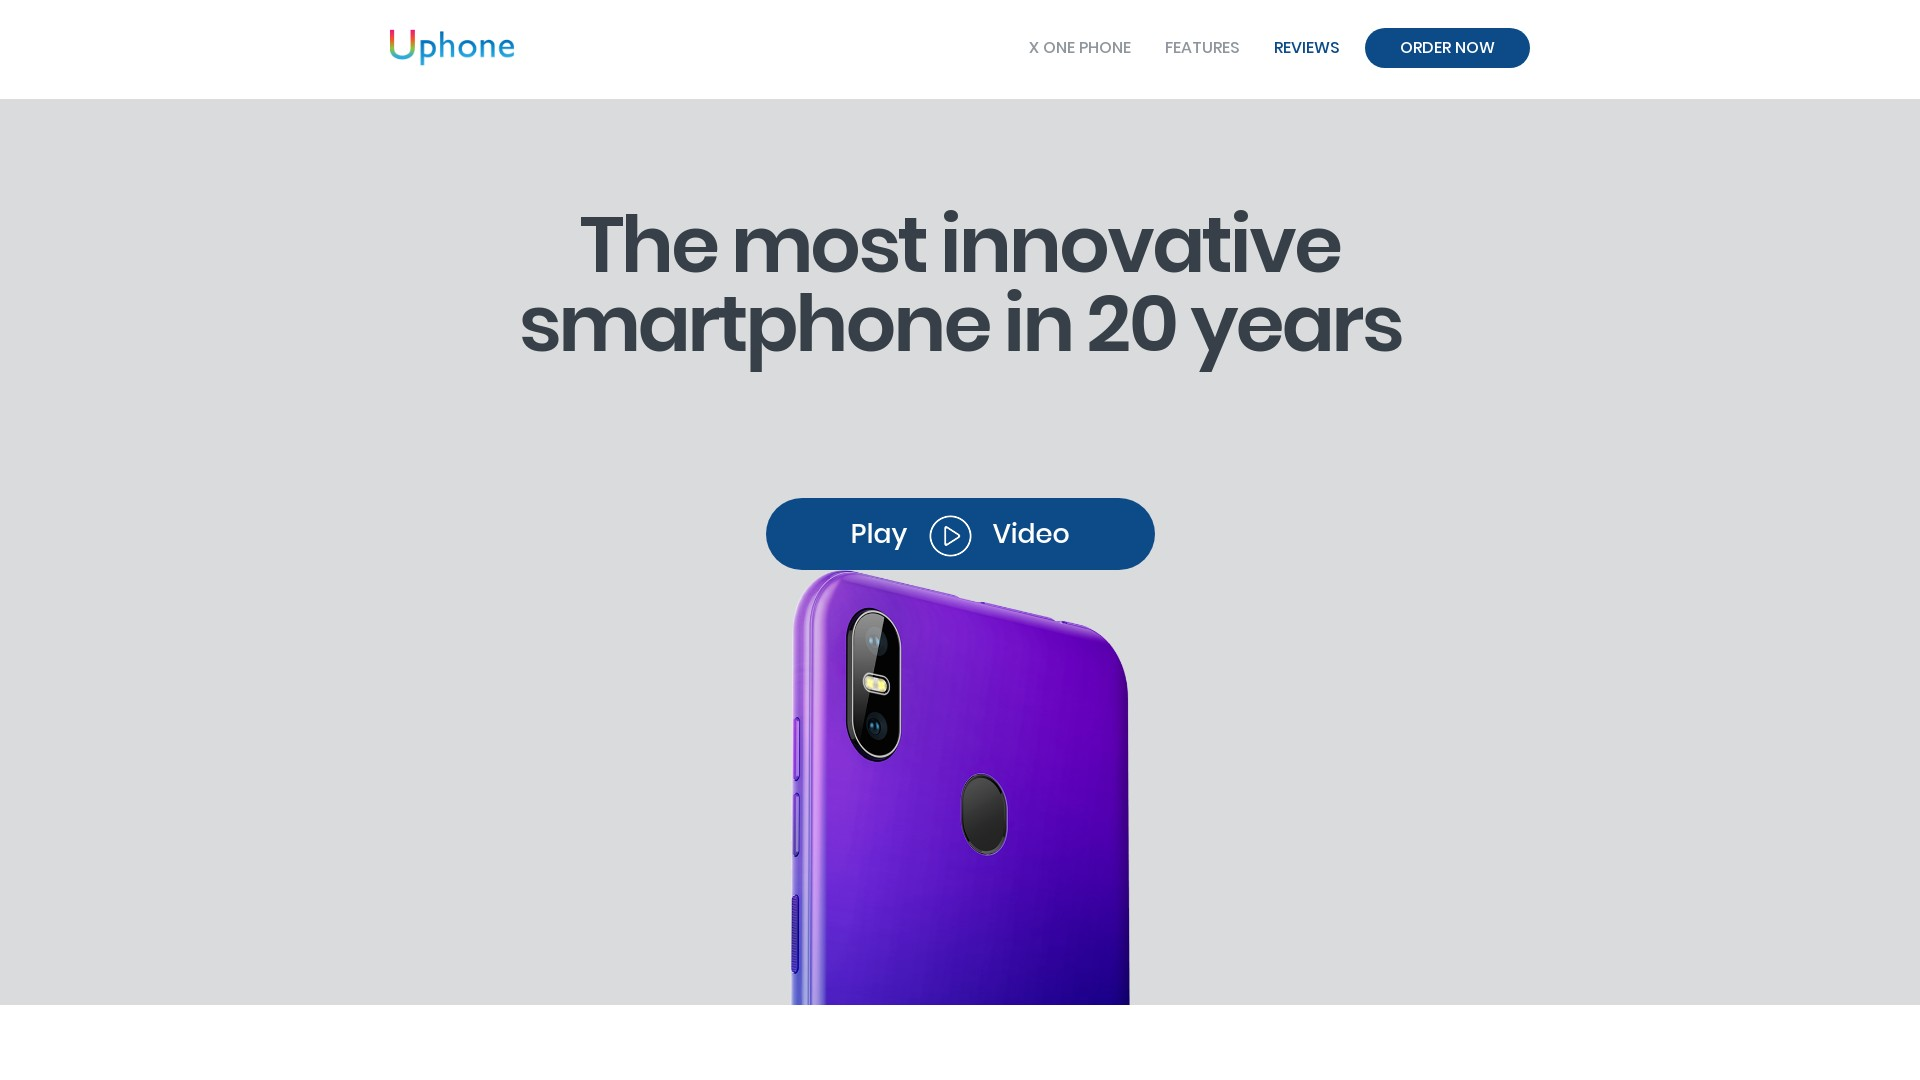 Is Uphone a Scam? Review of the Smartphone